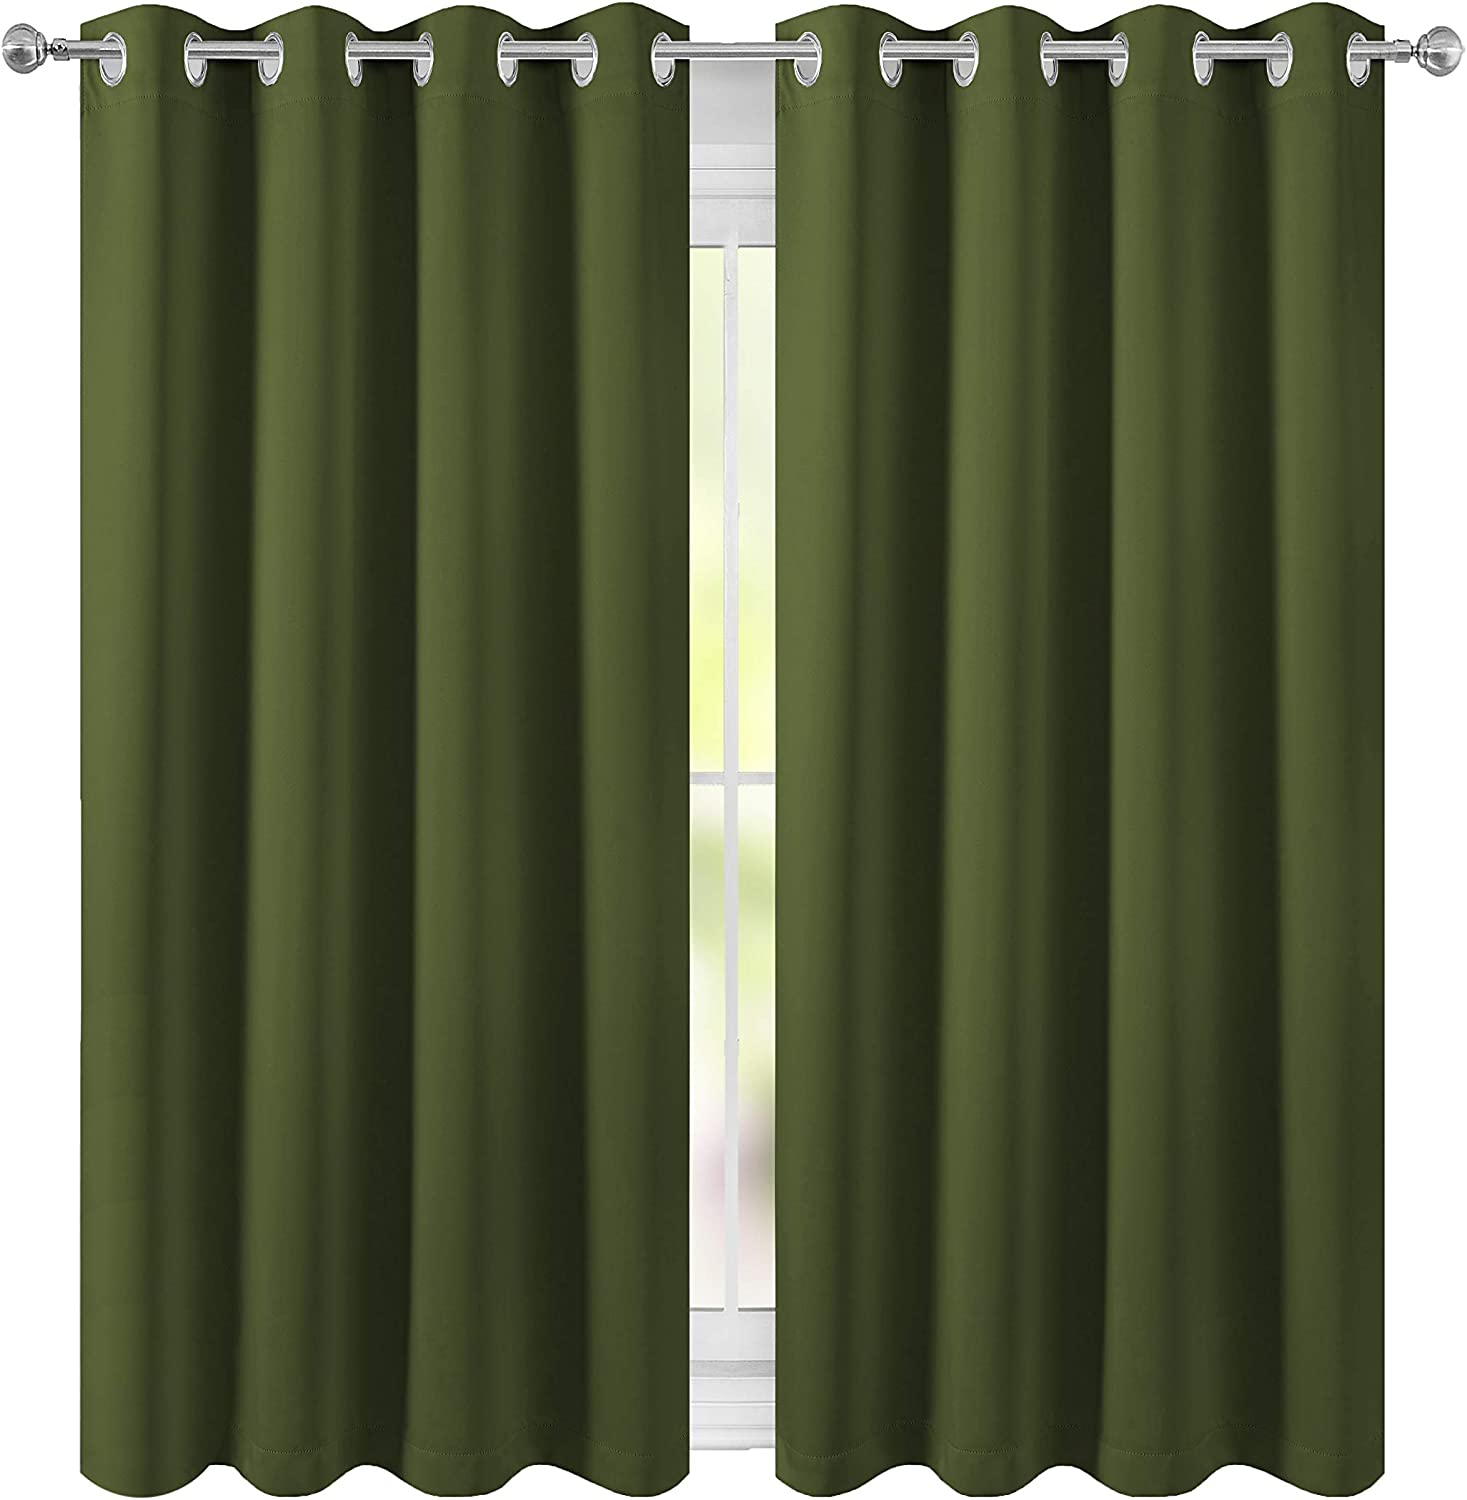 52 x 63 inch Beige FLOWEROOM Room Darkening Blackout Curtains Thermal Insulated Draperies with Grommet for Living Room 2 Panels